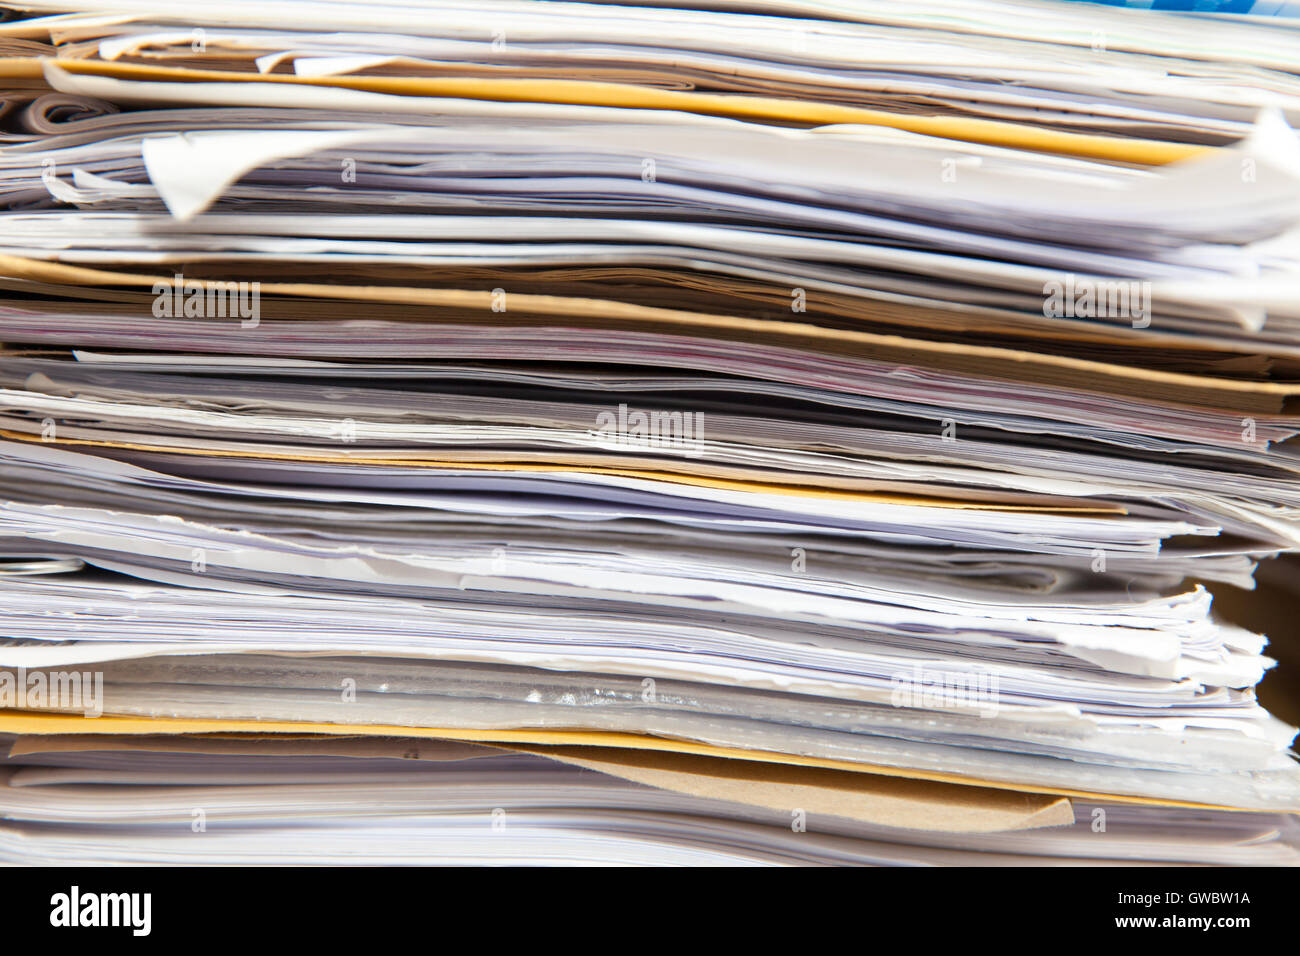 Paperwork files in a stack - Stock Image